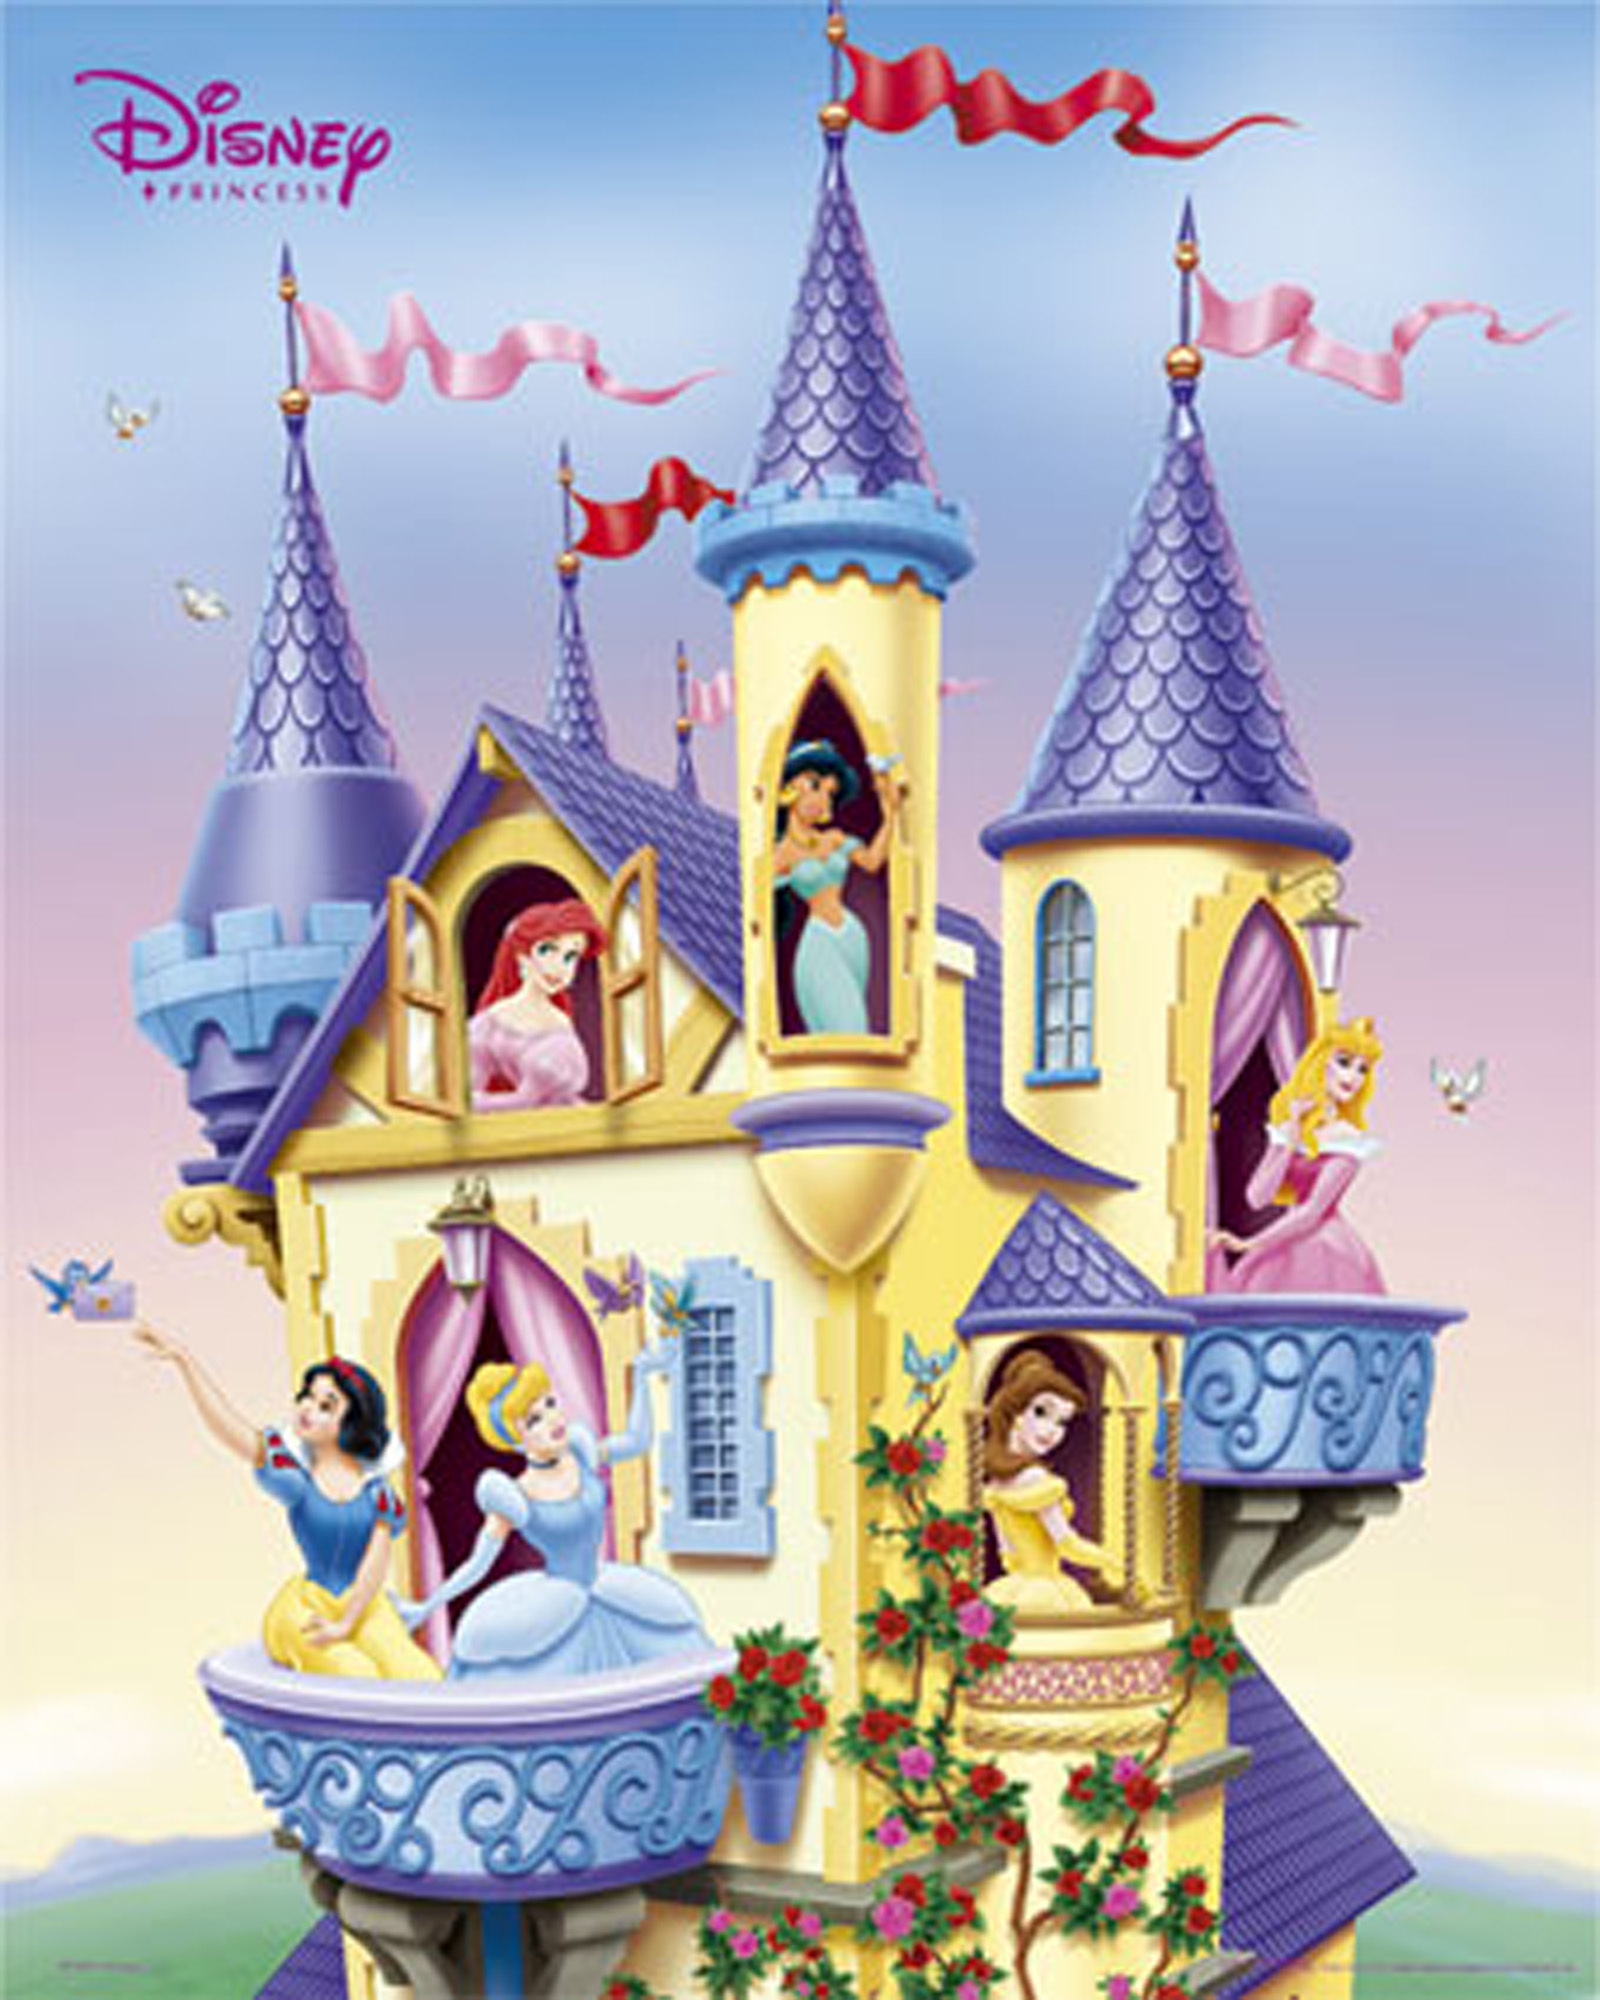 Princess Palace - blogspot.com